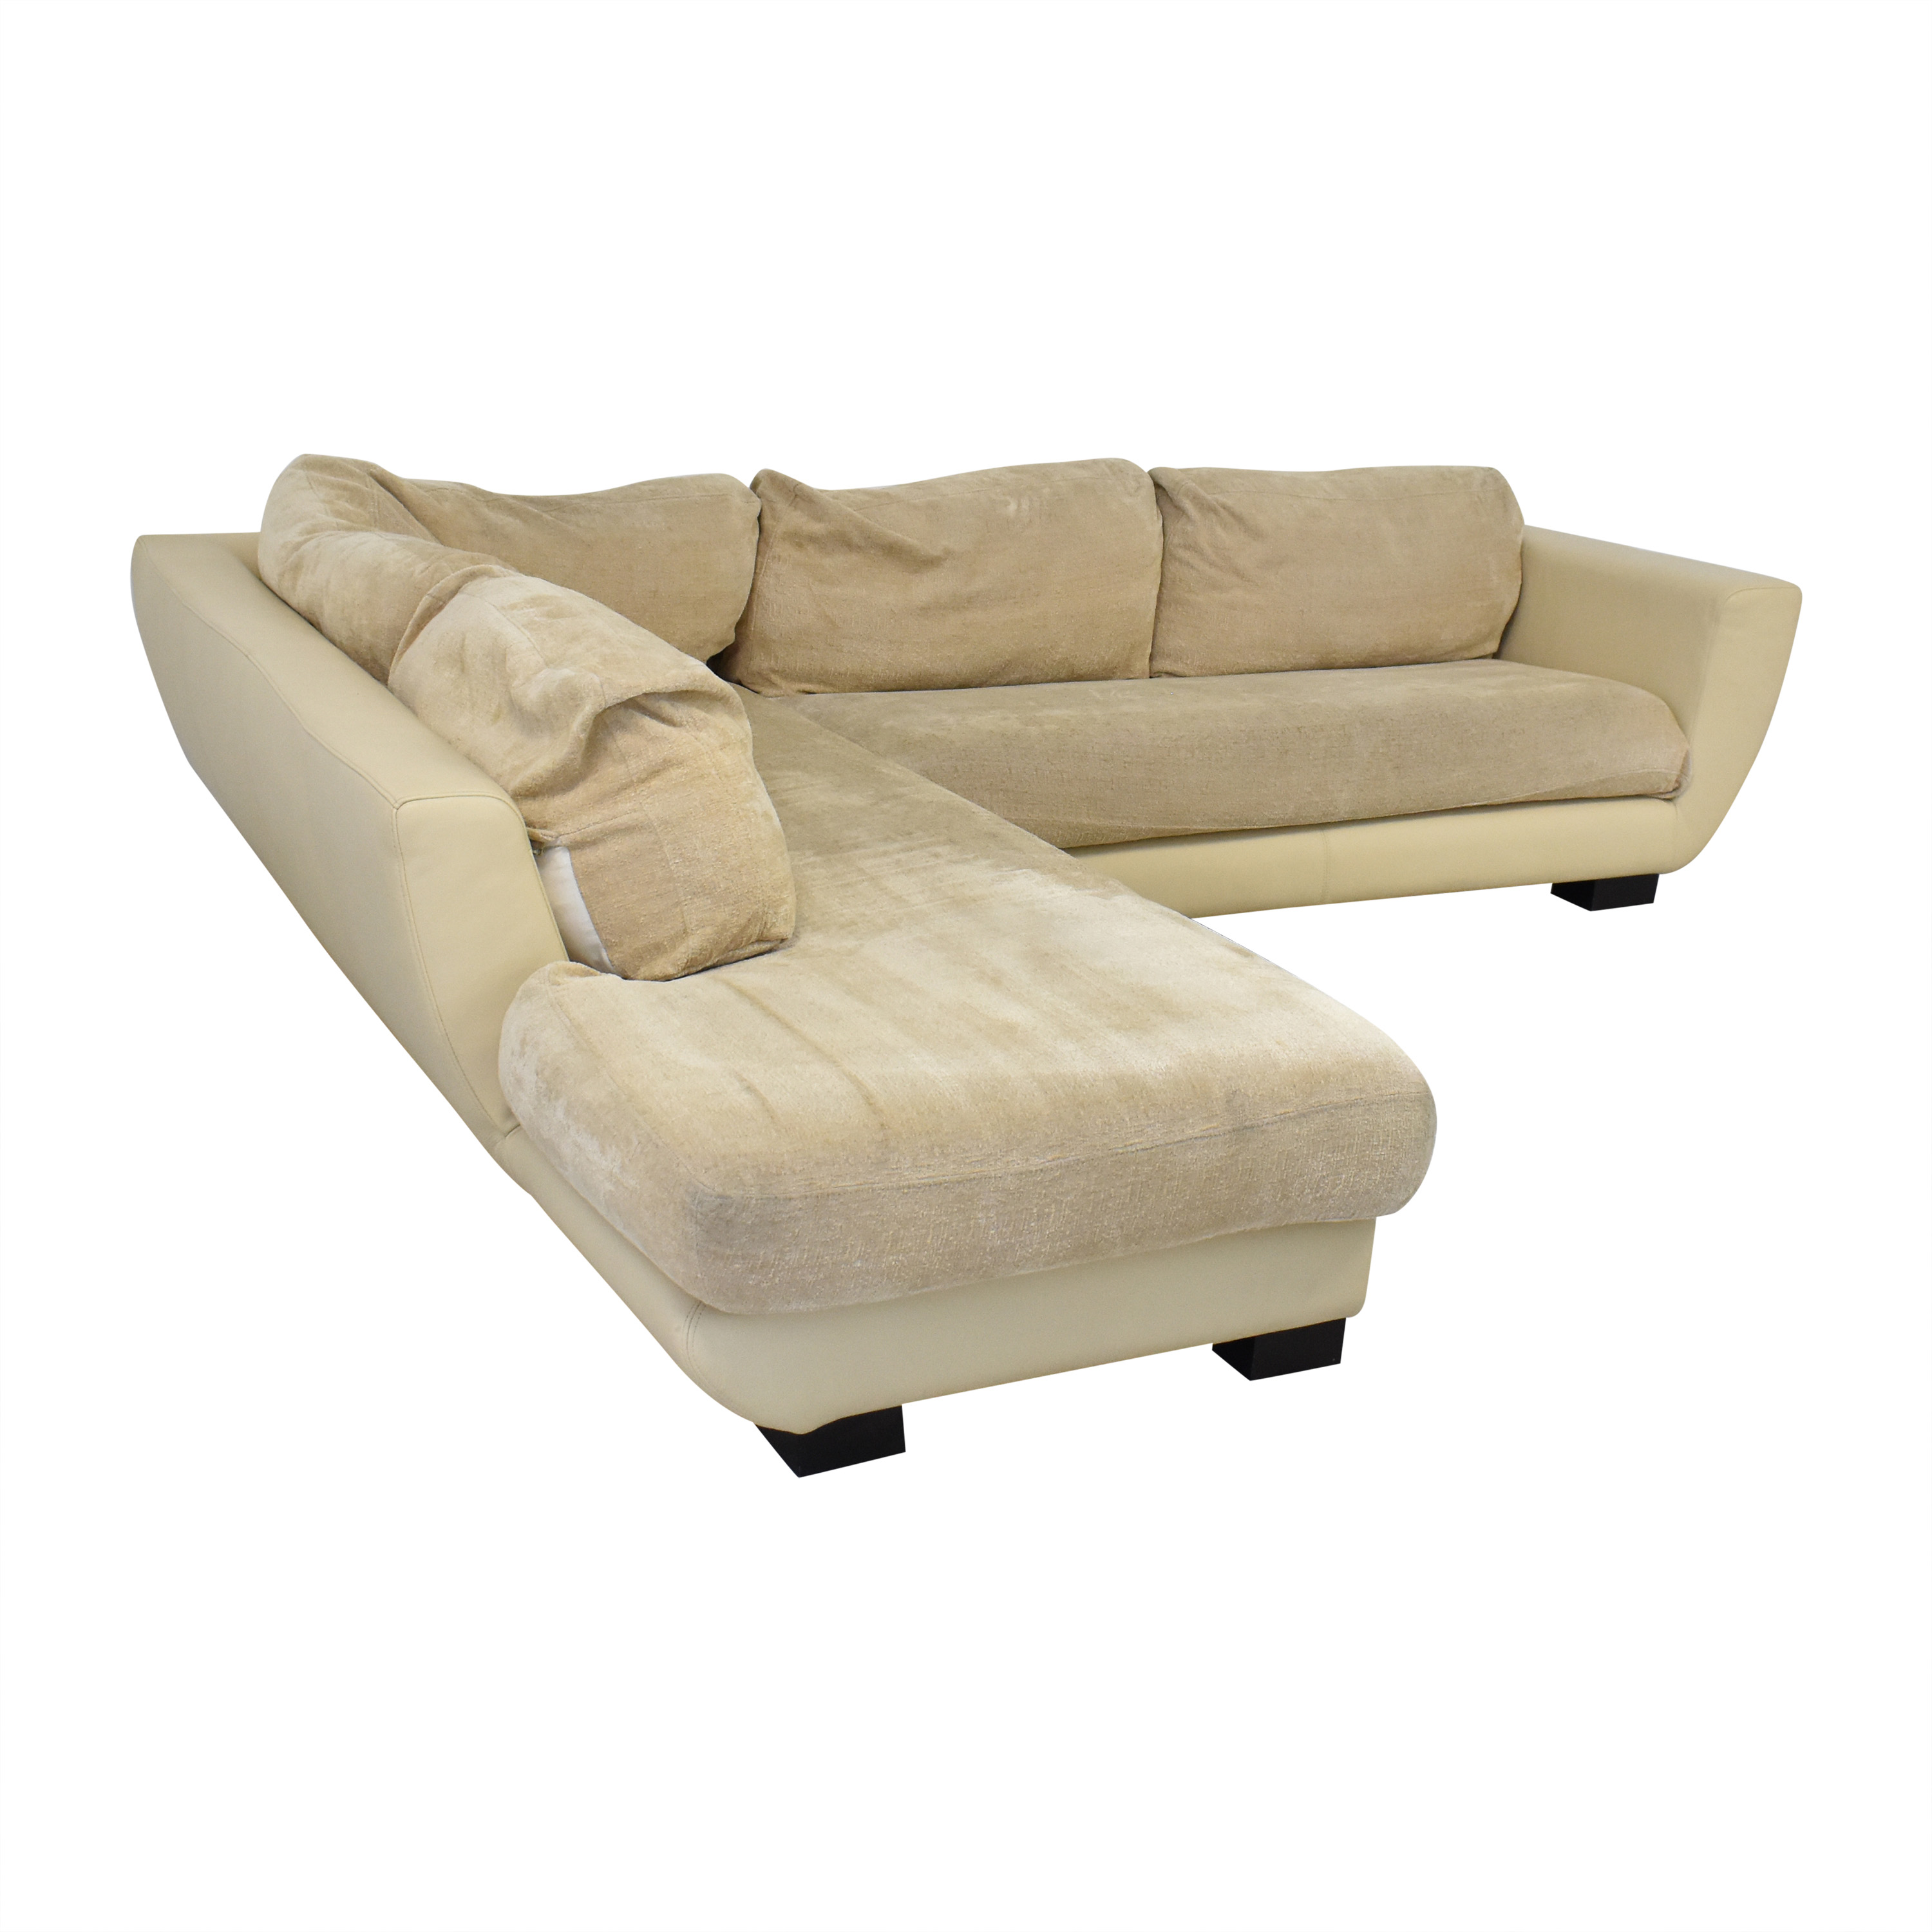 Maurice Villency Maurice Villency Sectional Sofa dimensions